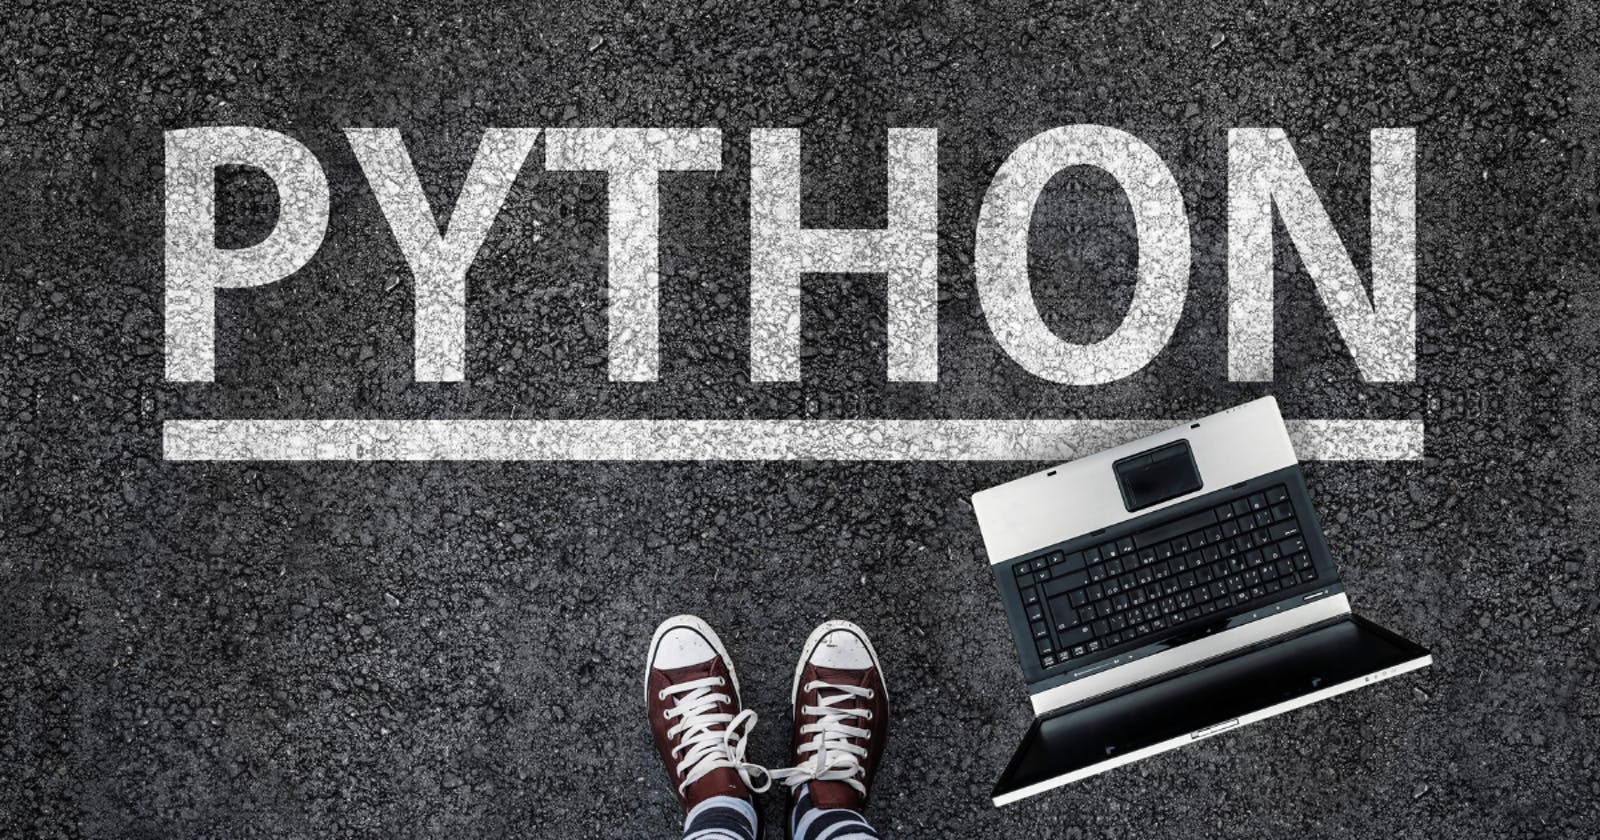 Why learn Python in 2021?